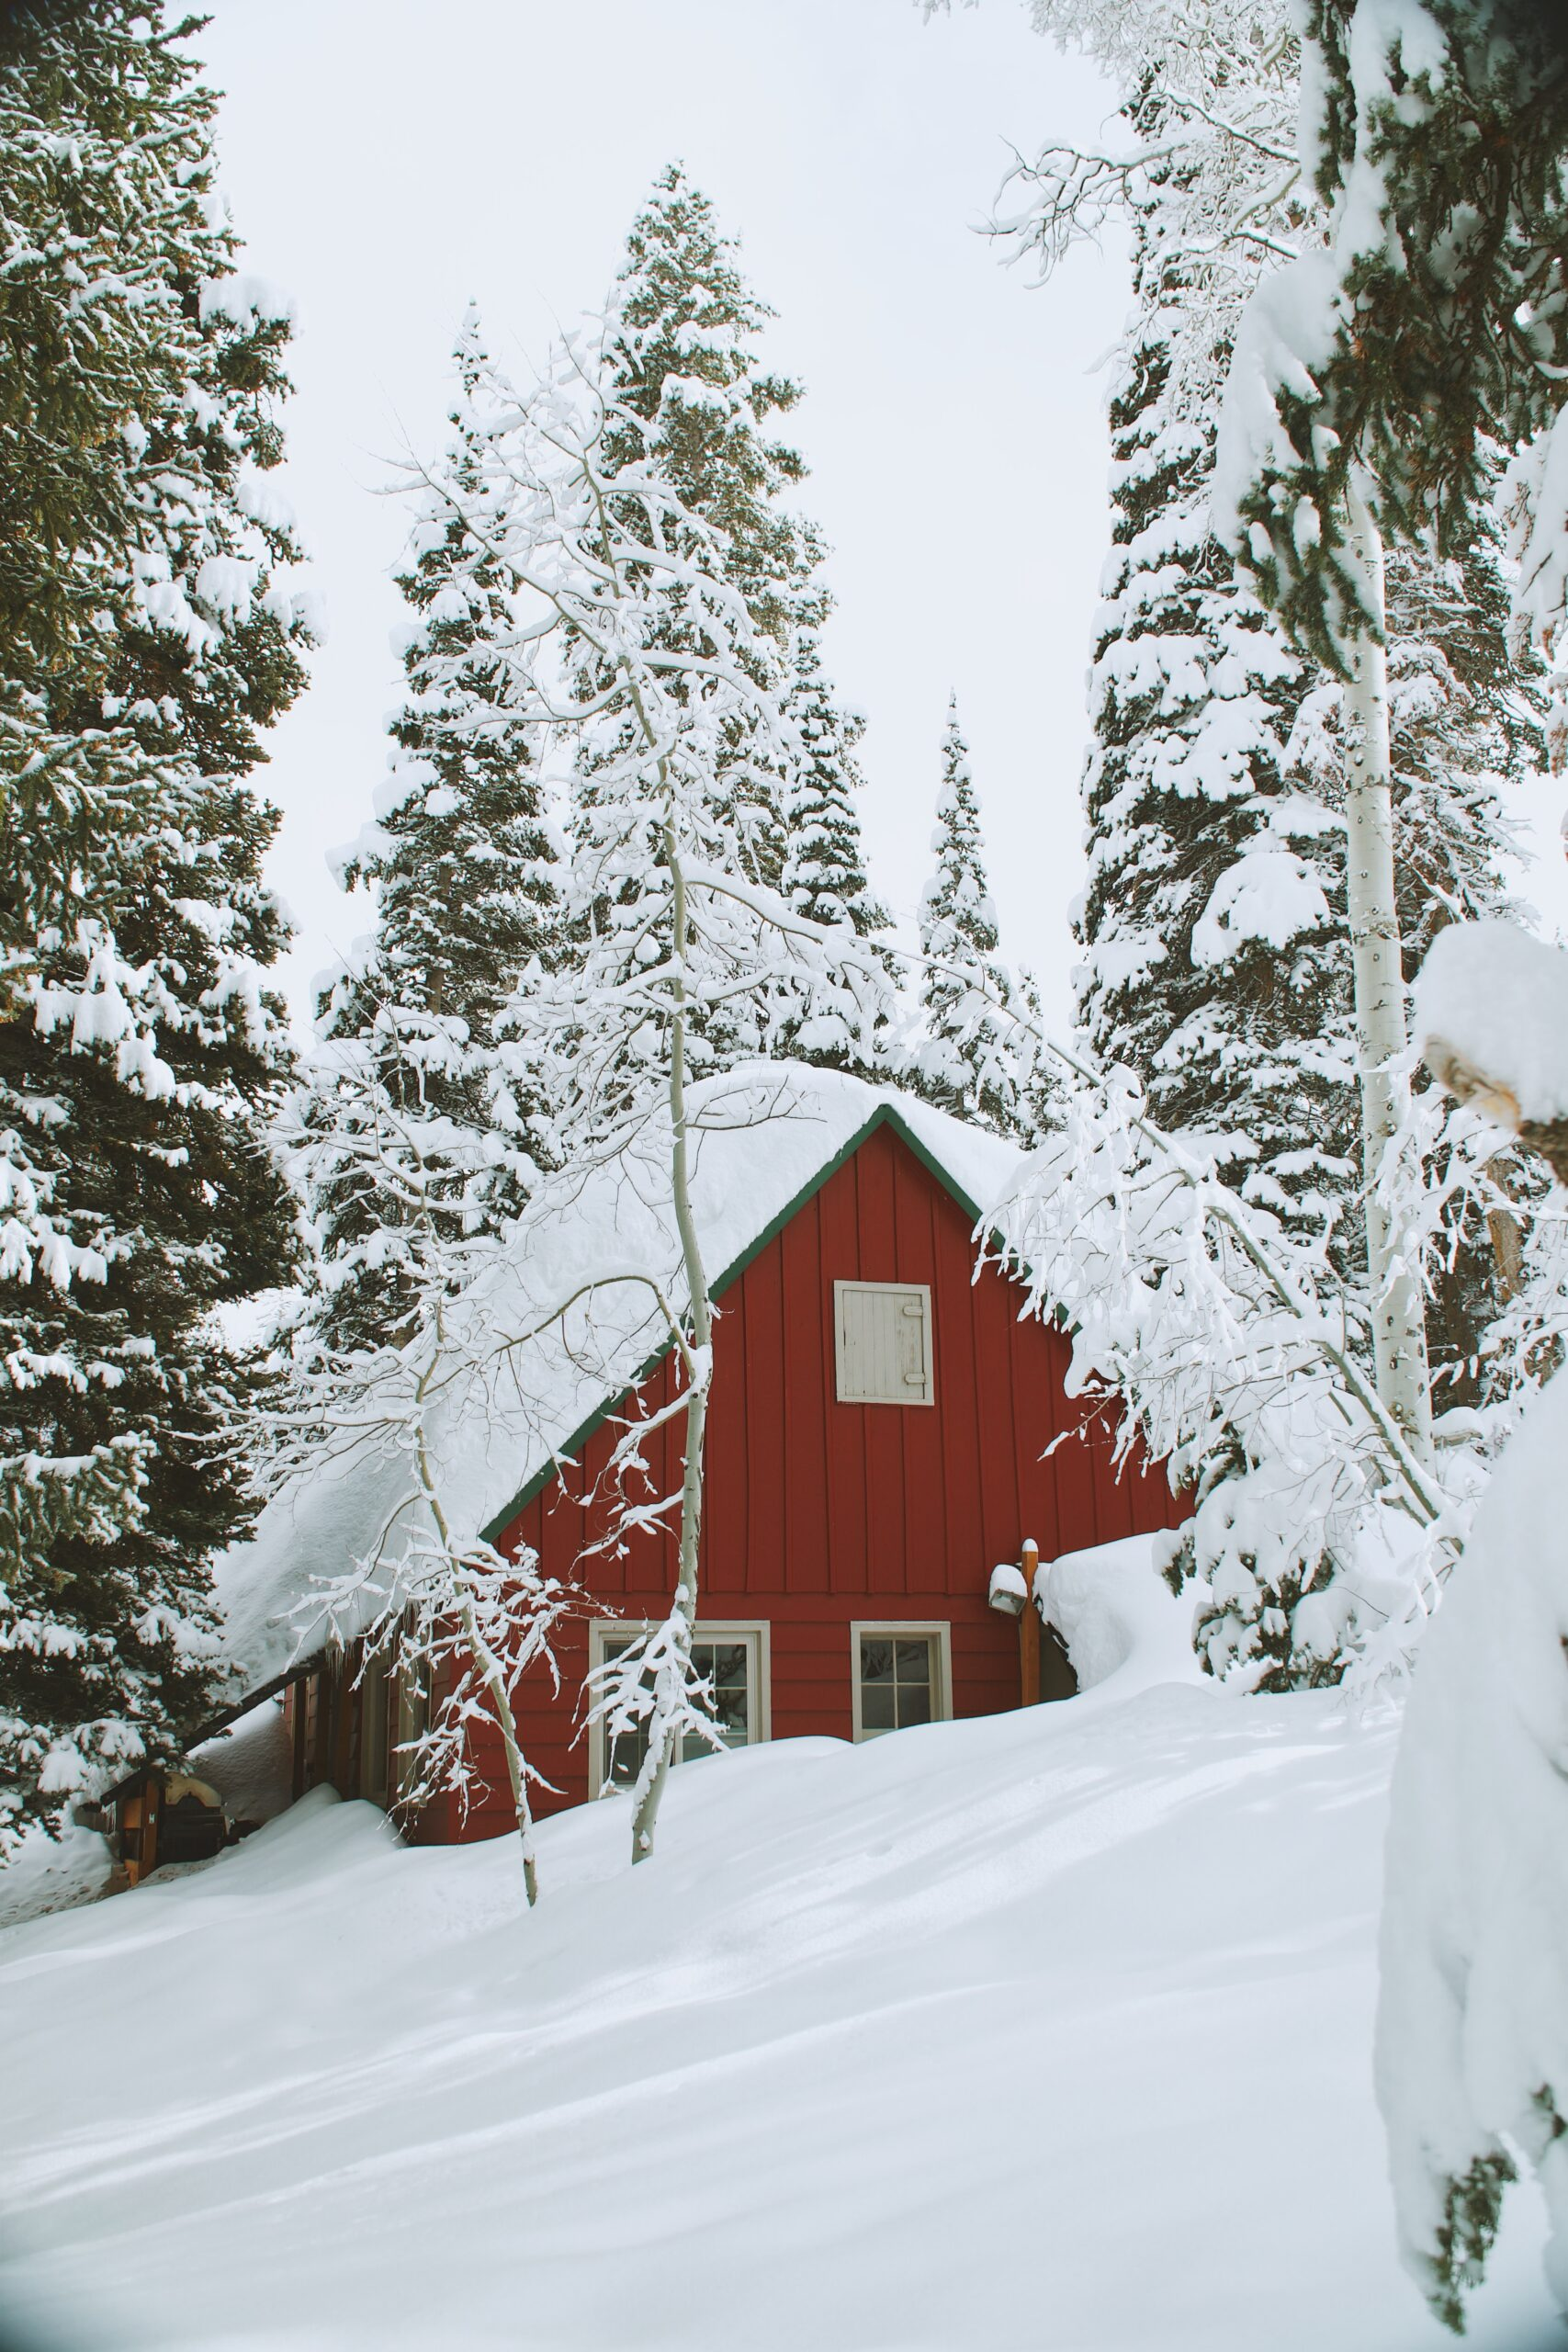 A Snow Covered Cabin With Trees In The Back